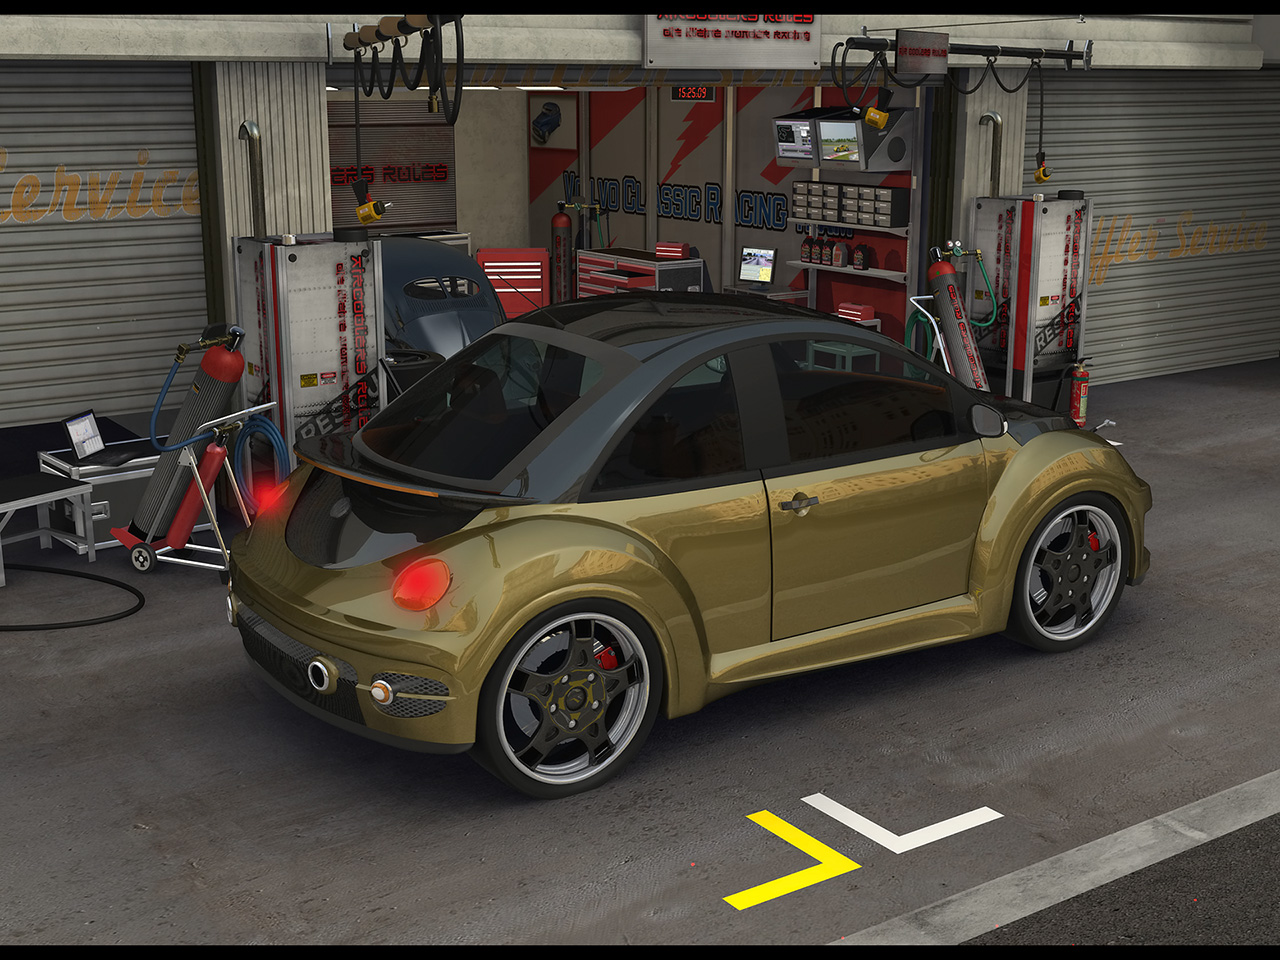 Vw new beetle tuning pictures and photos - Looking For A Way To Dress Up Your New Beetle Jrd Tuning Is Helping You Jrd Tuning Is A Company Specializing In Automotive Design And Coach Work